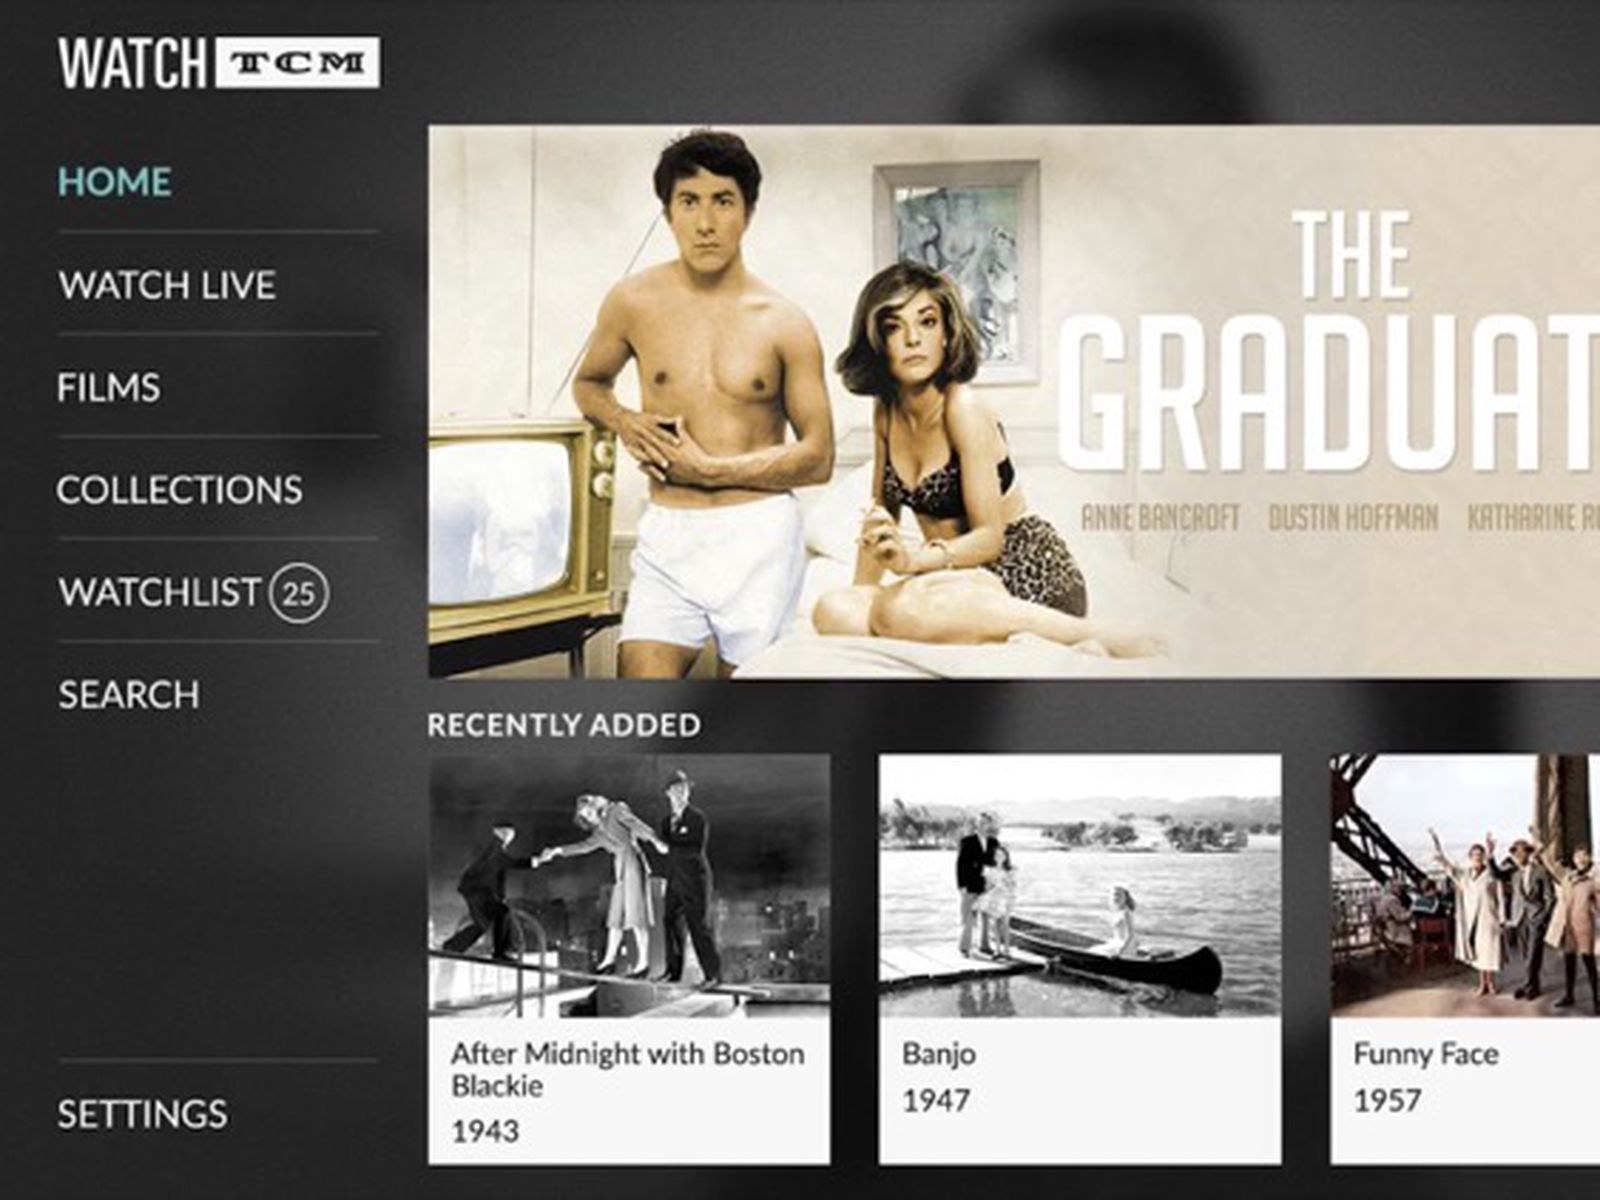 Turner Classic Movies Launches Watch Tcm Tvos App With Thousands Of Classic Films On Demand Macrumors